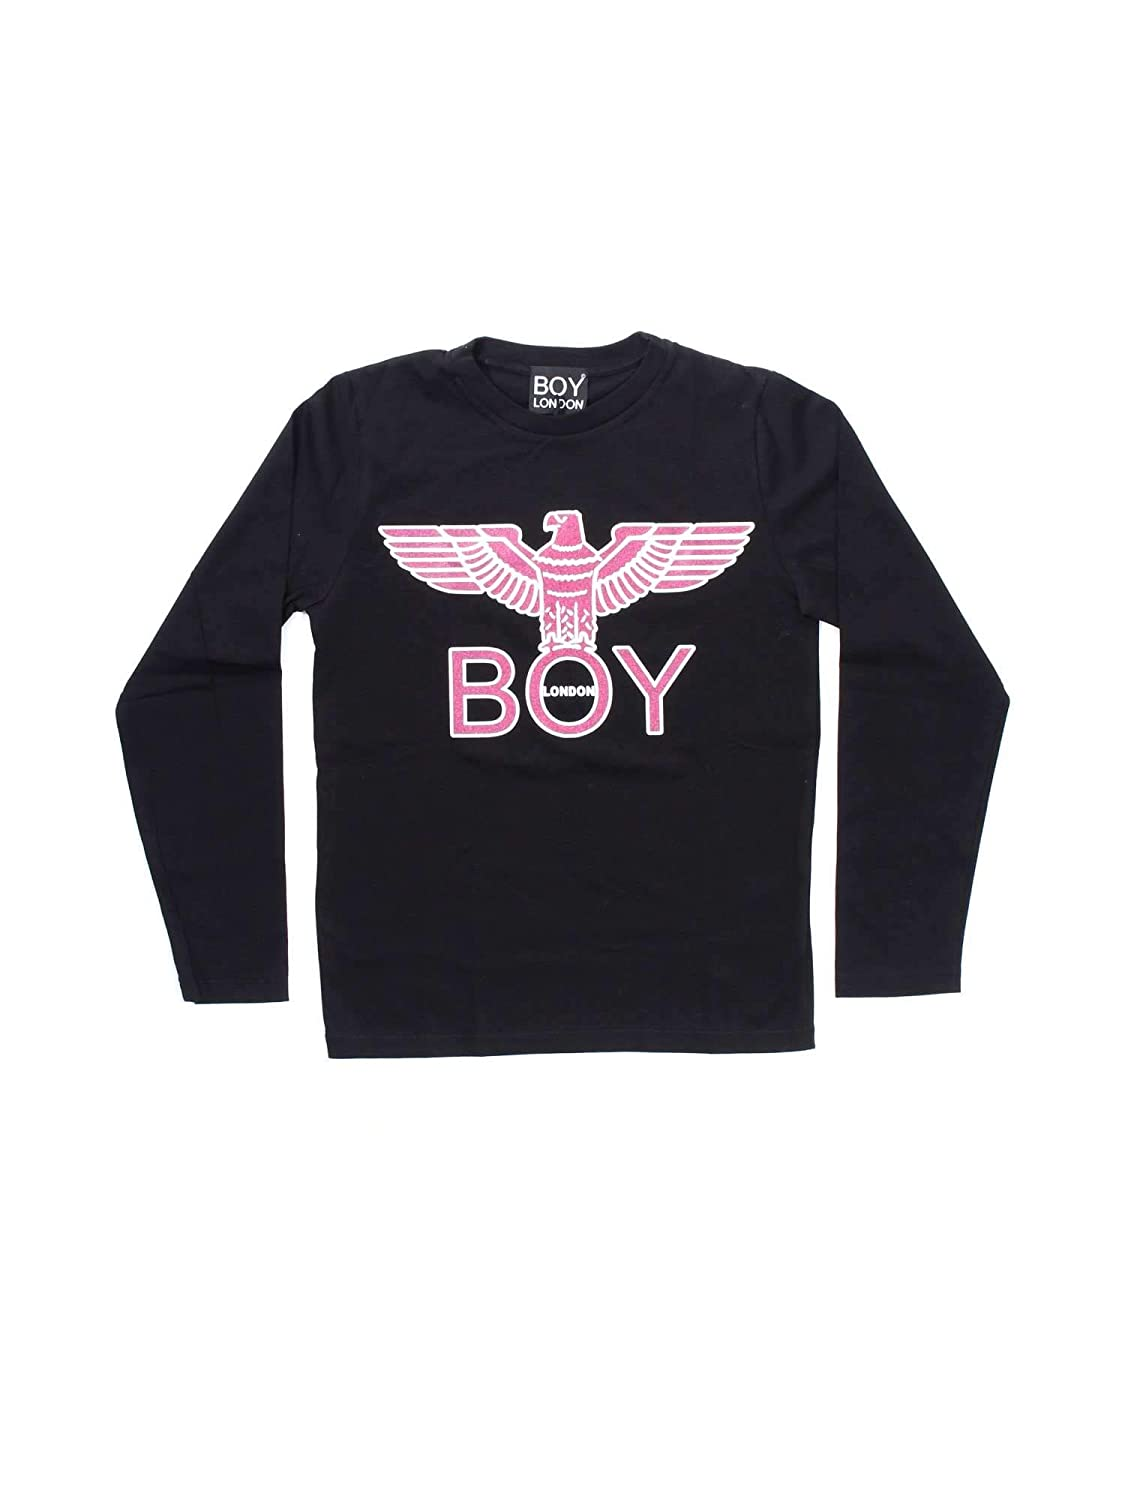 BOY LONDON T Shirt Grigia con Logo Fucsia XXX: Amazon.it